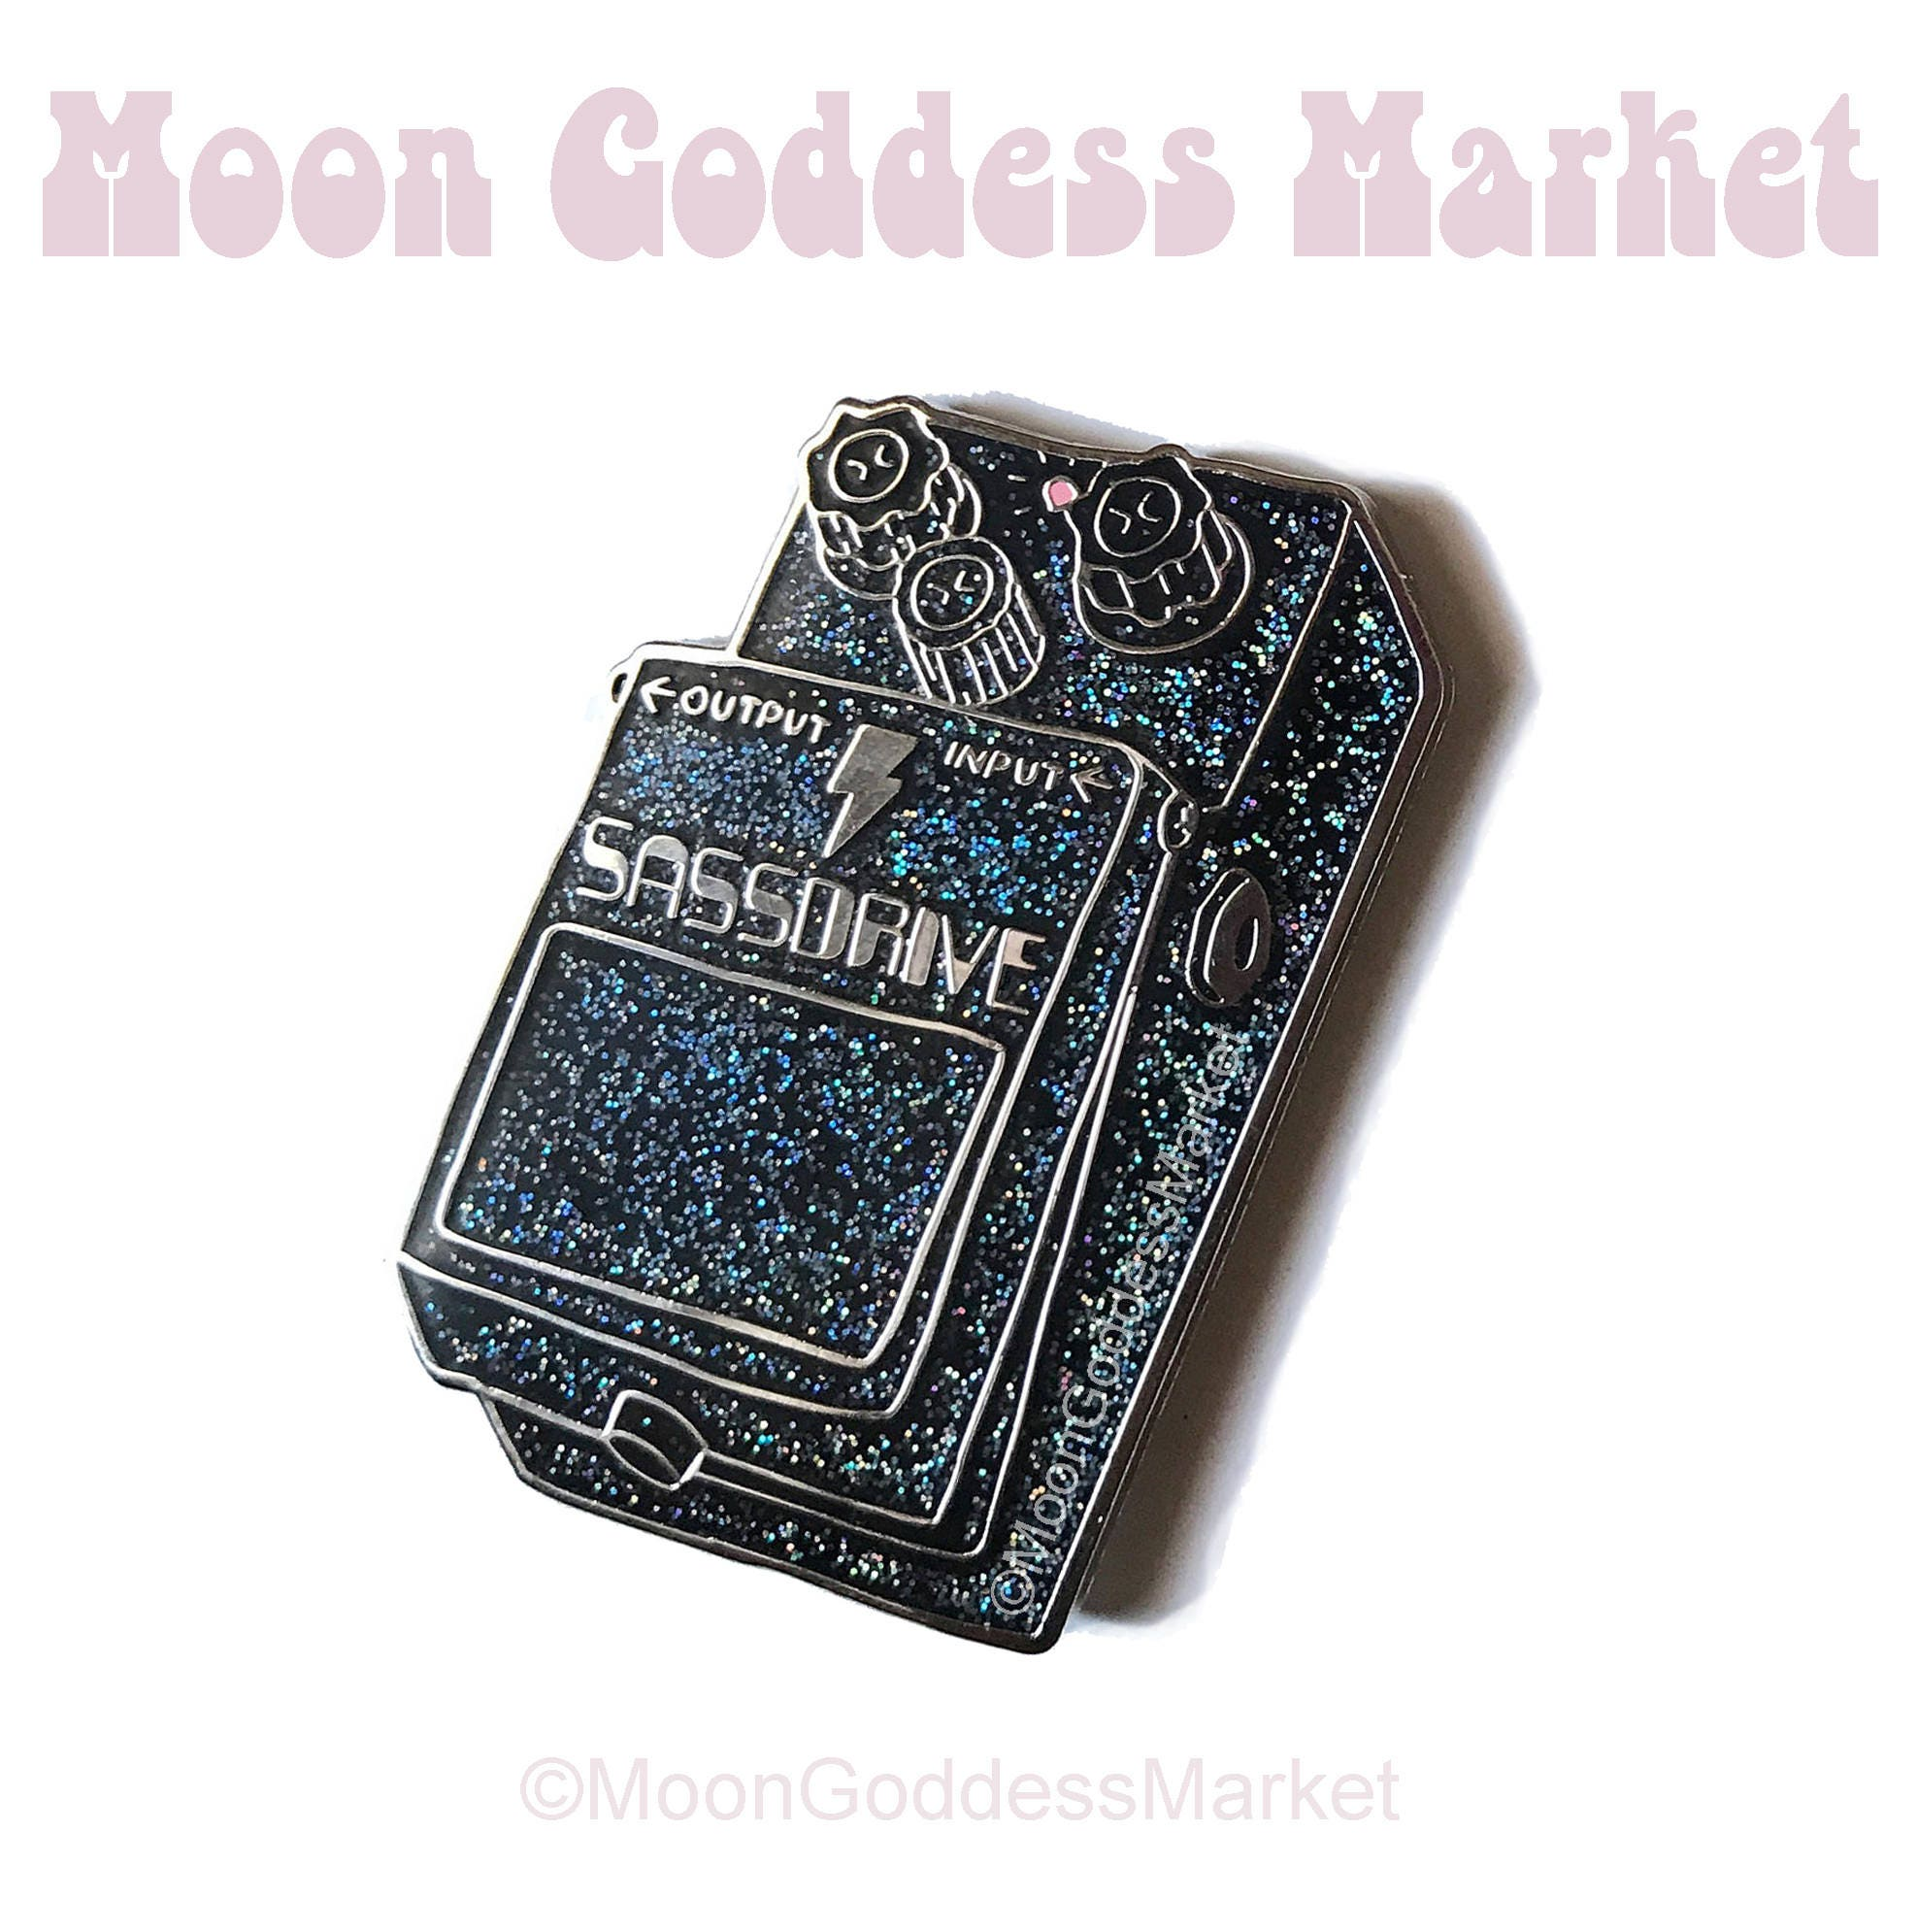 sale sassdrive guitar pedal overdrive pin moon goddess etsy. Black Bedroom Furniture Sets. Home Design Ideas